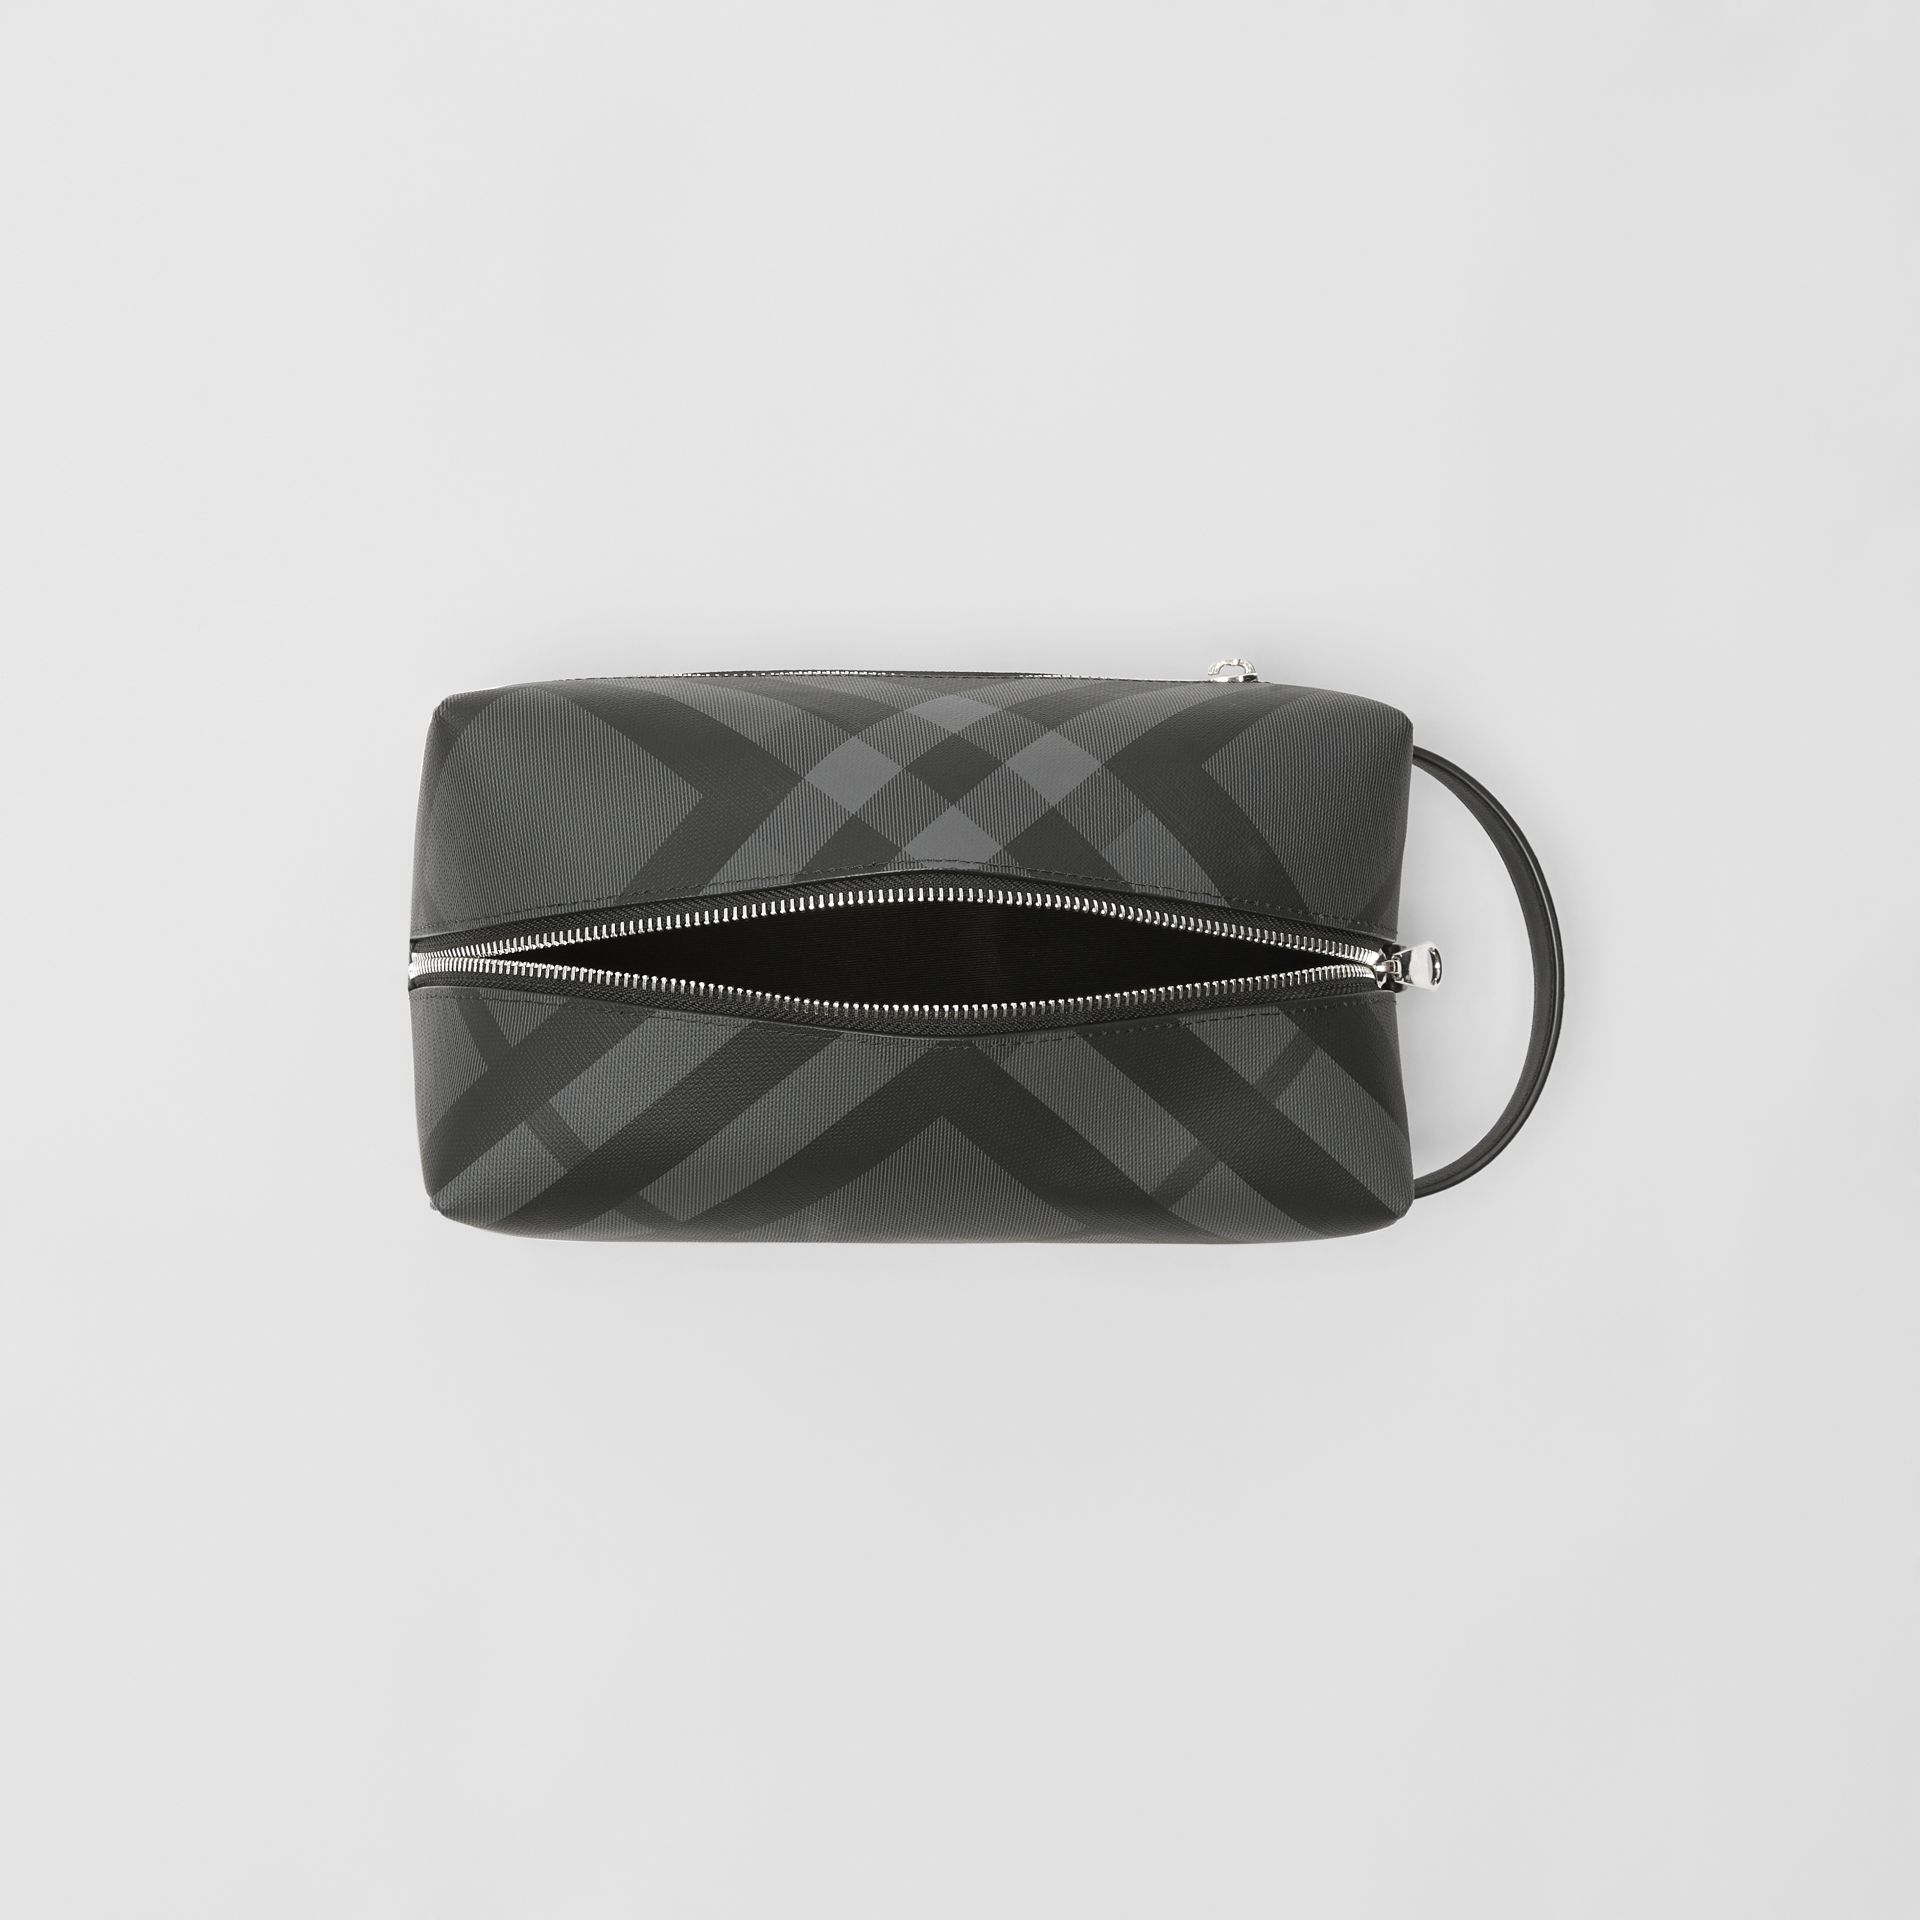 2864beccca58 EKD London Check and Leather Pouch in Charcoal black - Men ...